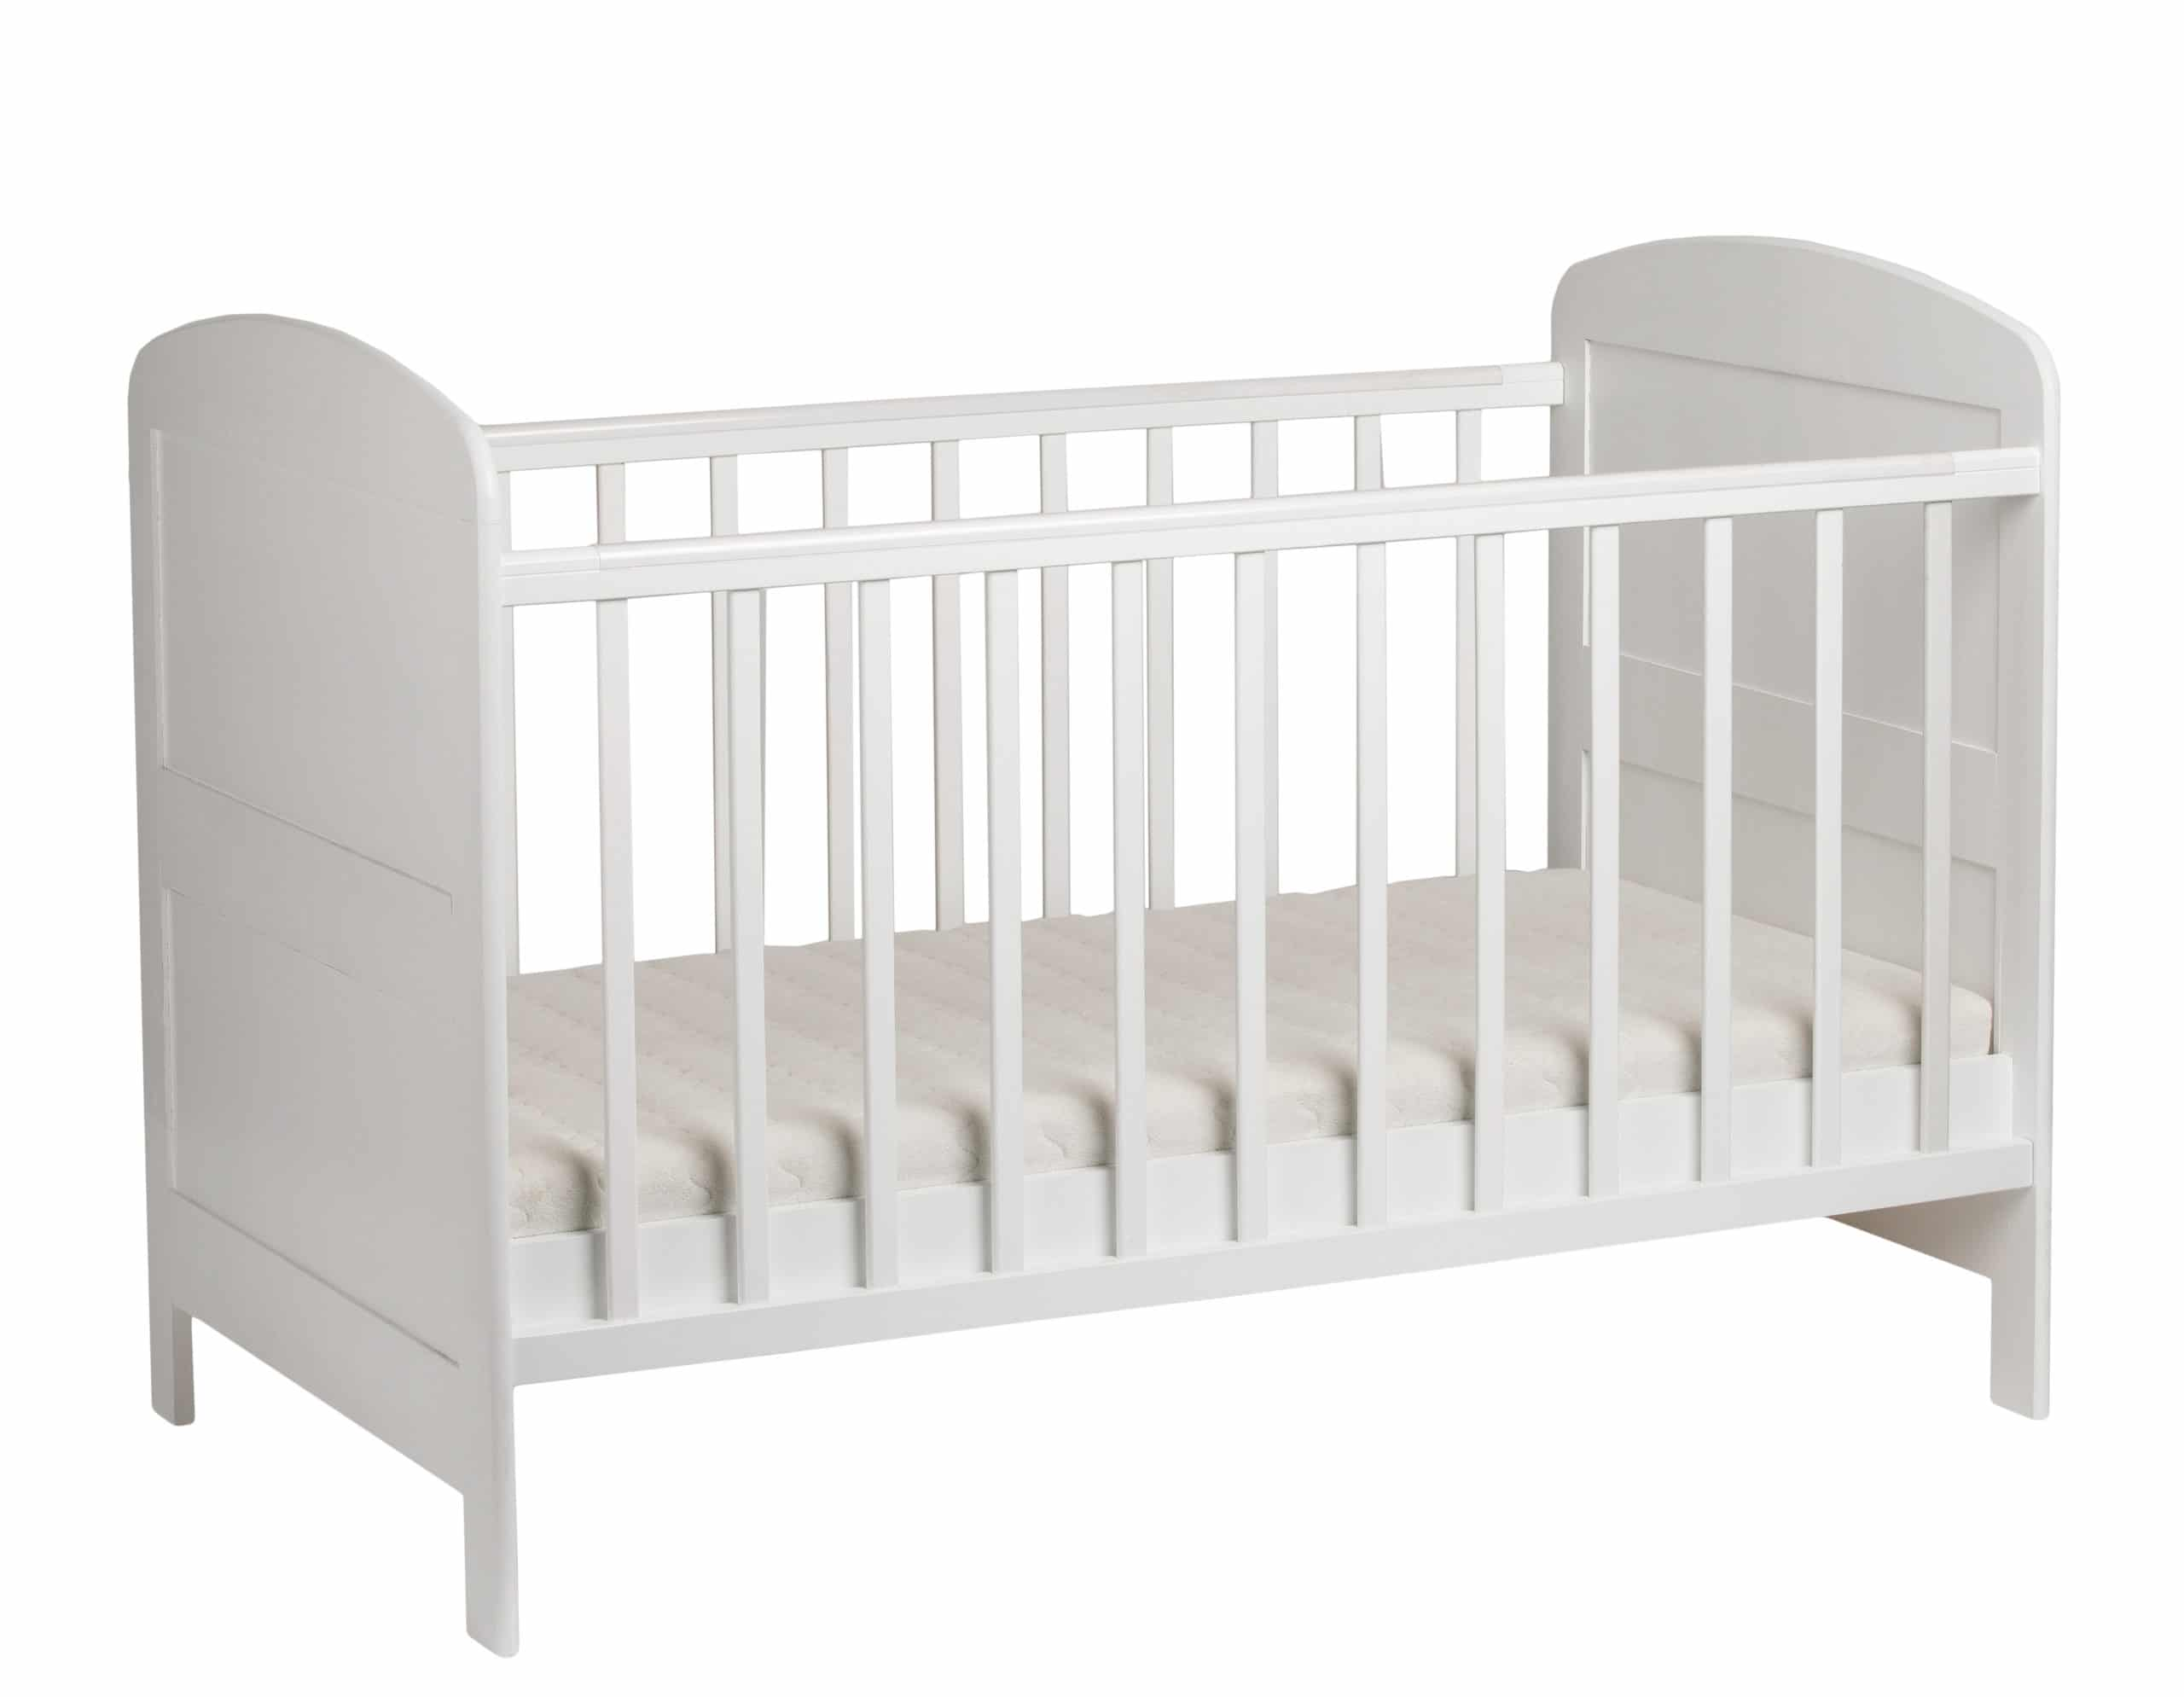 Furniture. White crib for kids with mattress isolated on white background